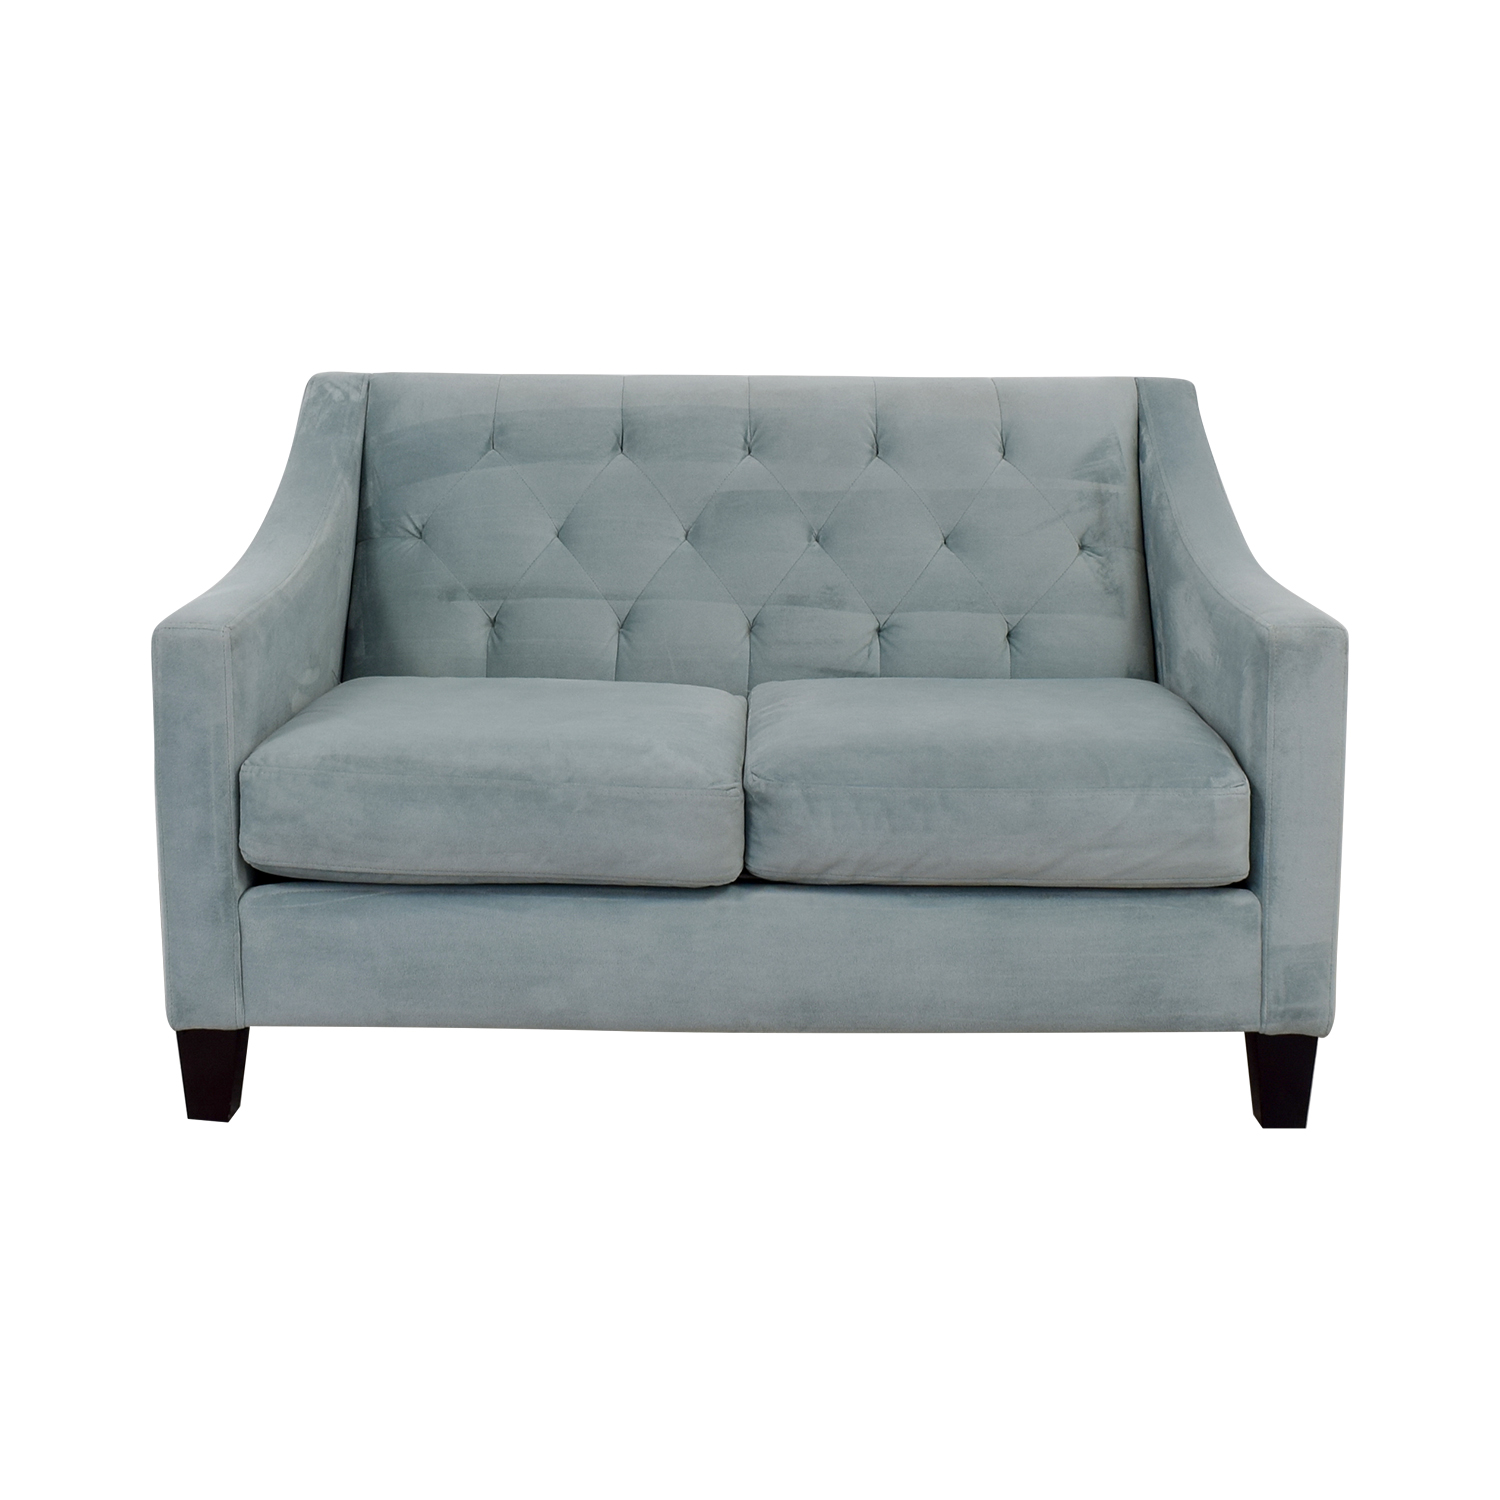 Max Home Baby Blue Tufted Two Cushion Loveseat Loveseats